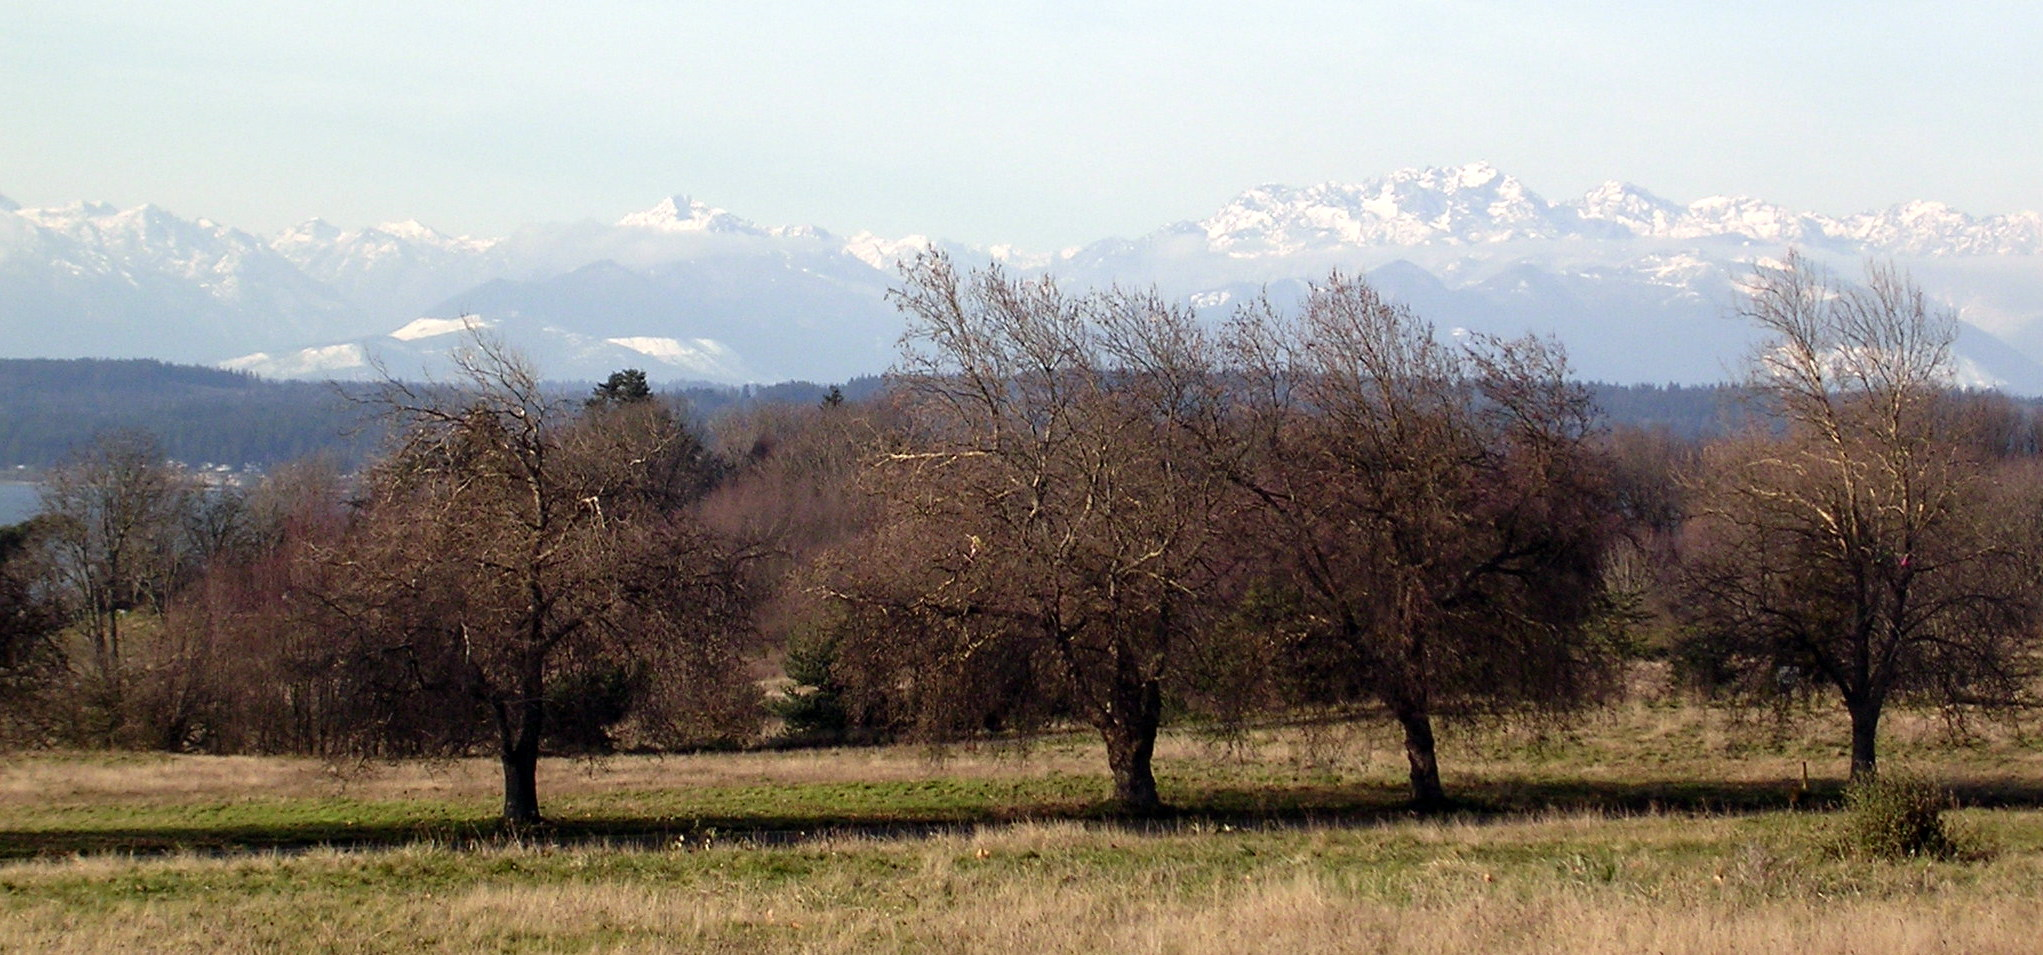 Olympic Mountain Range from Discovery Park